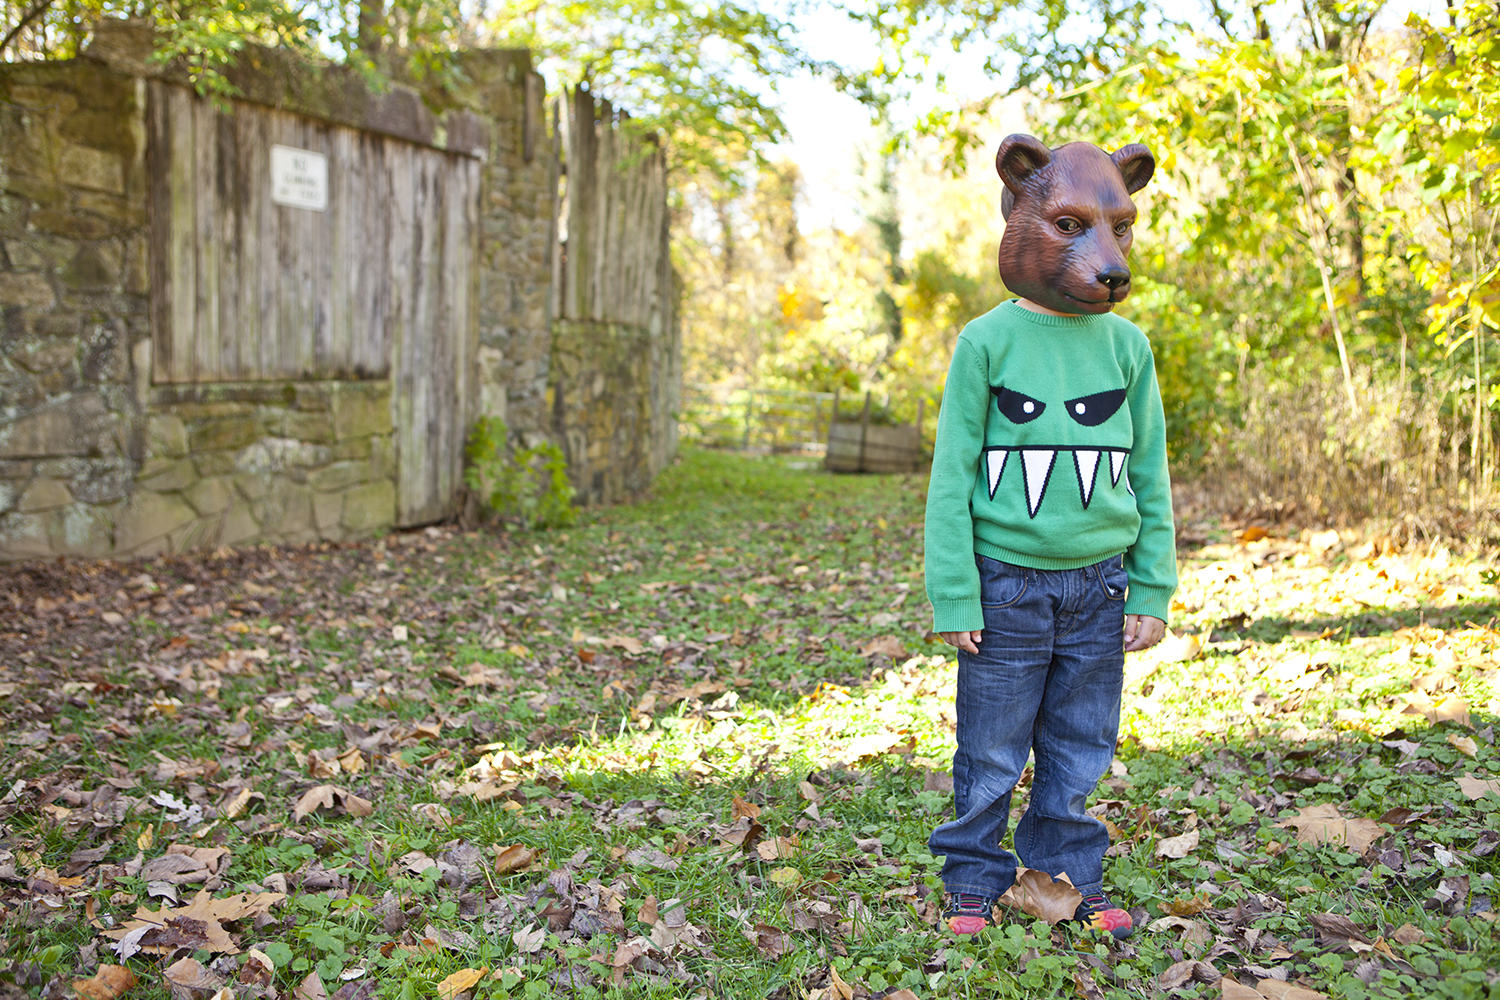 lifestyle-editorial-children-washington-dc-malek-naz-photography-contempo-kids-bear-mask.jpg